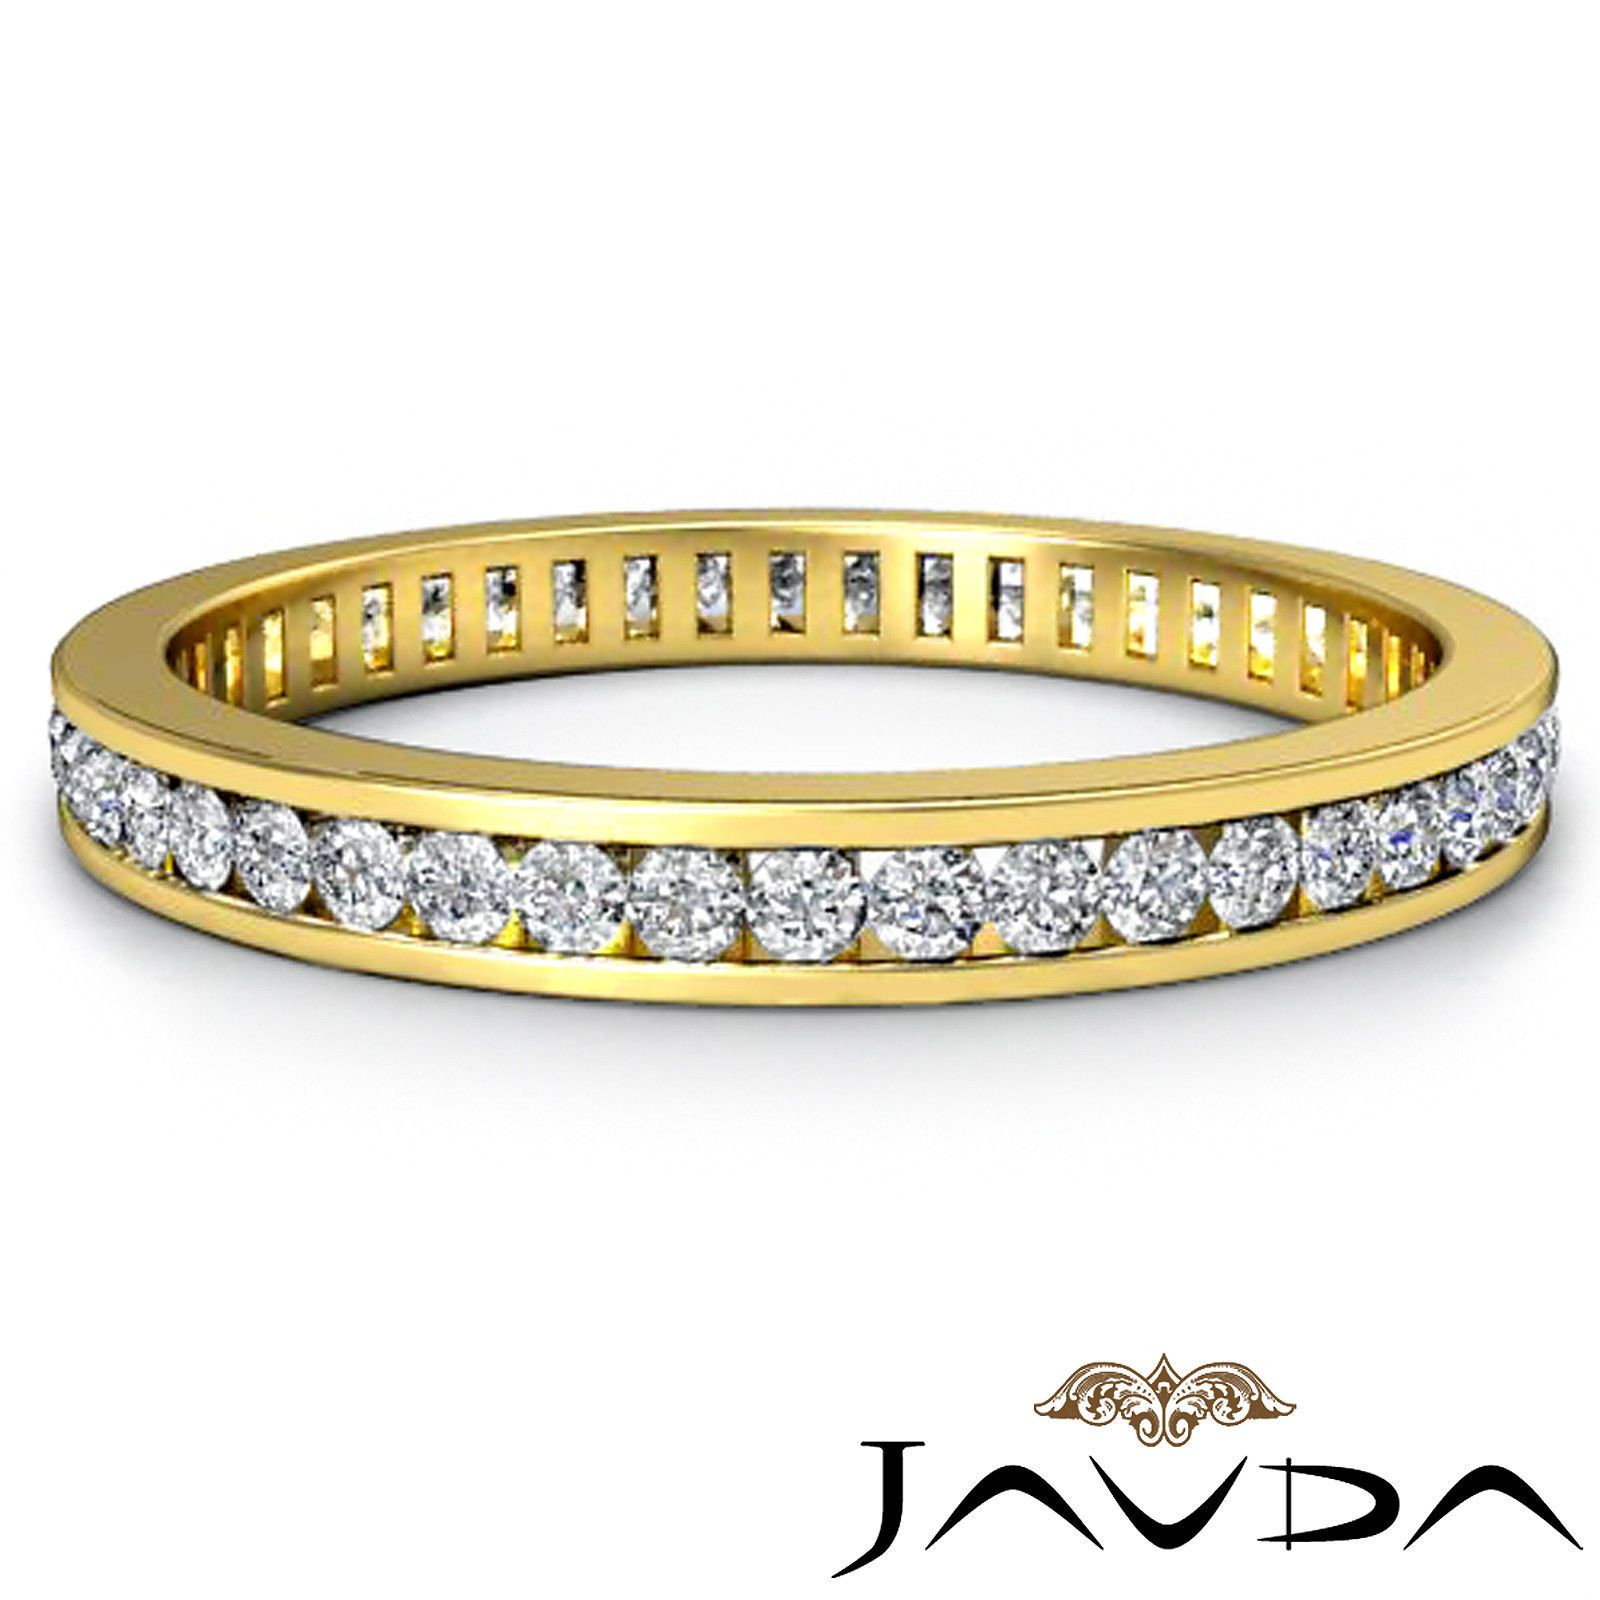 ebay wedding rings sets Womens Eternity Band Channel Set Diamond Engagement Ring 18K Yellow Gold 0 70ct eBay